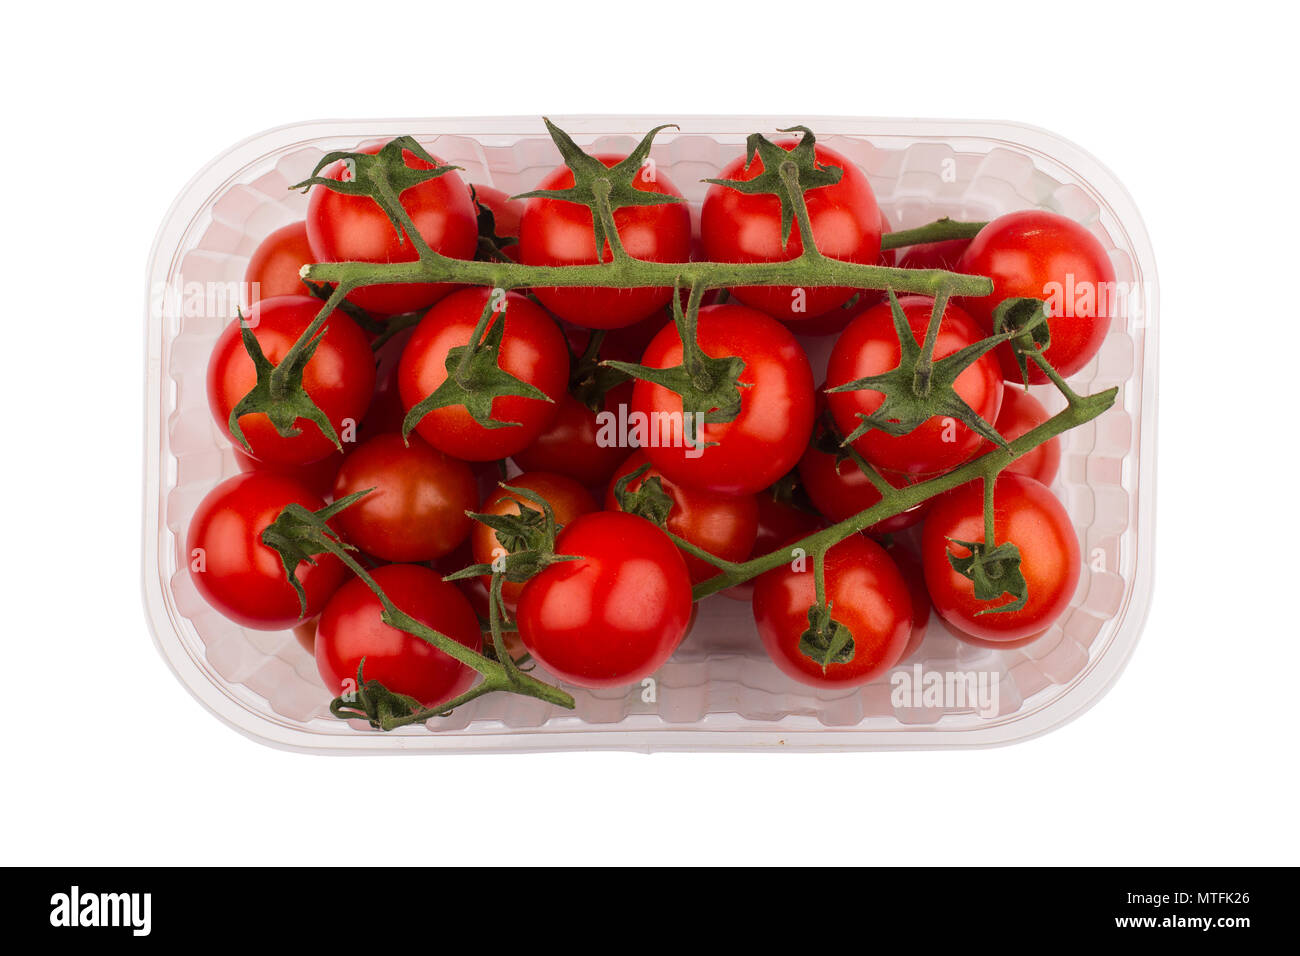 top view closeup detail of fresh red cherry tomatoes with green leaves  in open plastic transparent packaging container isolated on white background - Stock Image